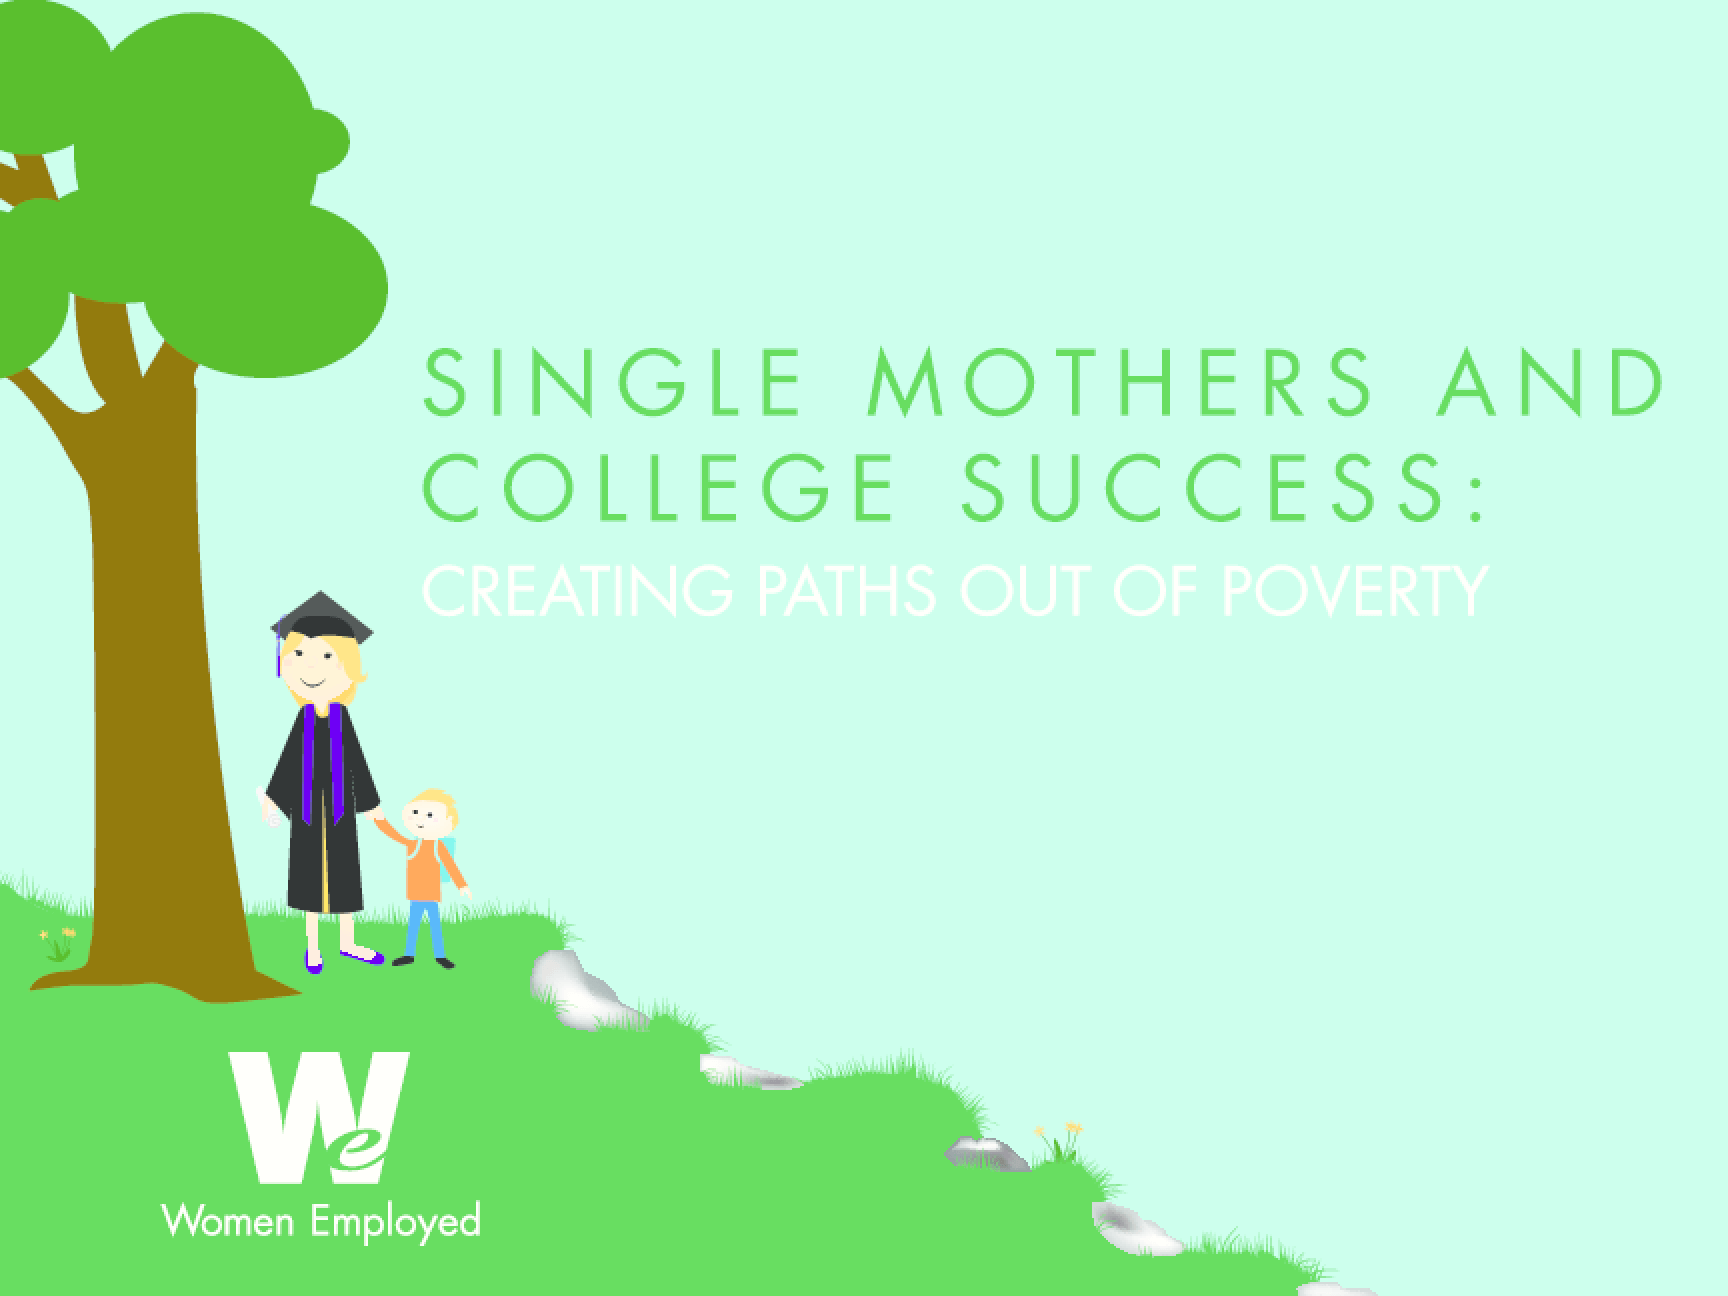 Single Mothers and College Success: Creating Paths Out of Poverty